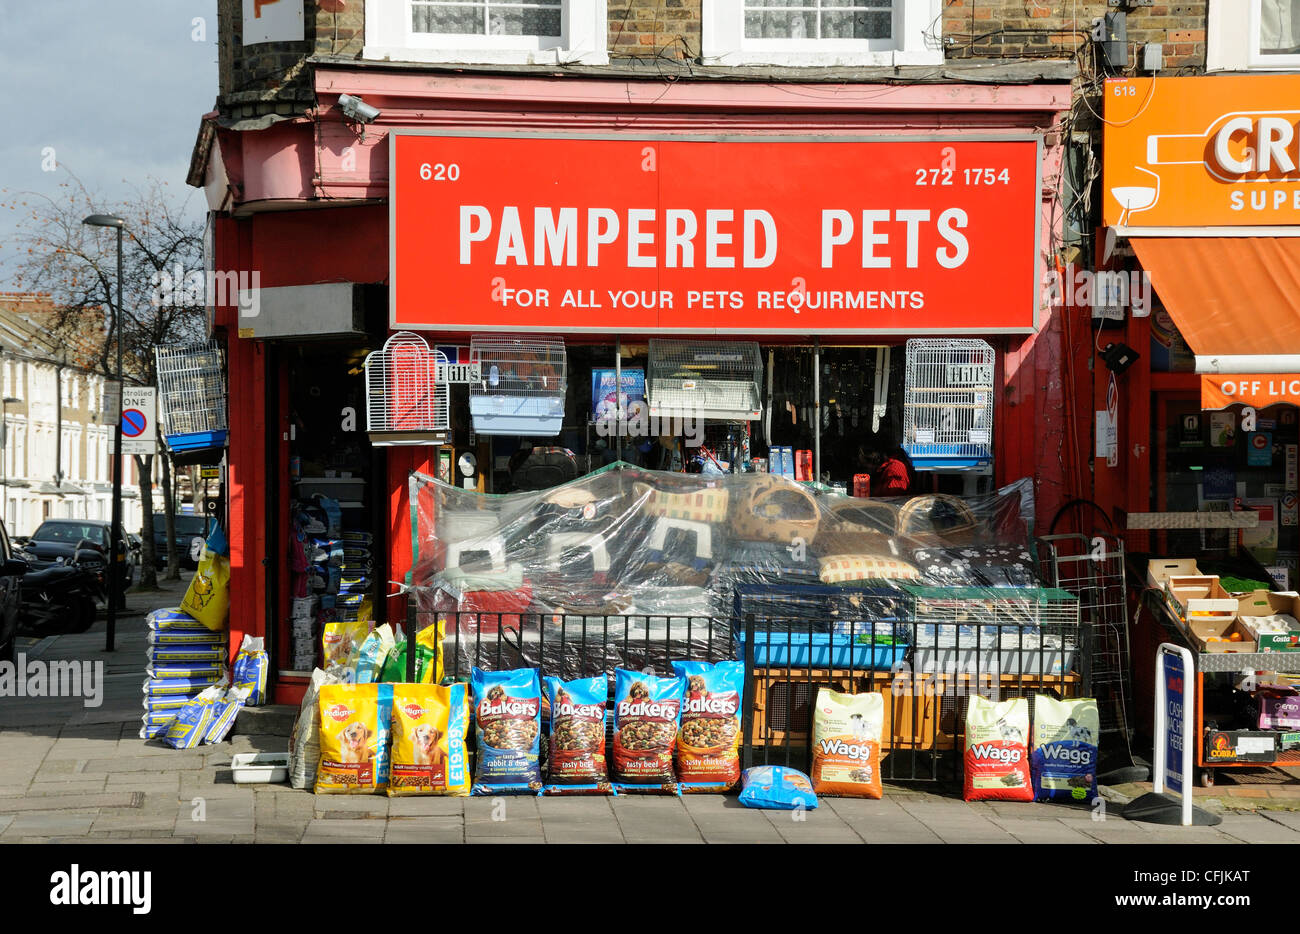 Pampered Pets, pet shop in Holloway Road with bags of food and baskets on the pavement Islington London England - Stock Image